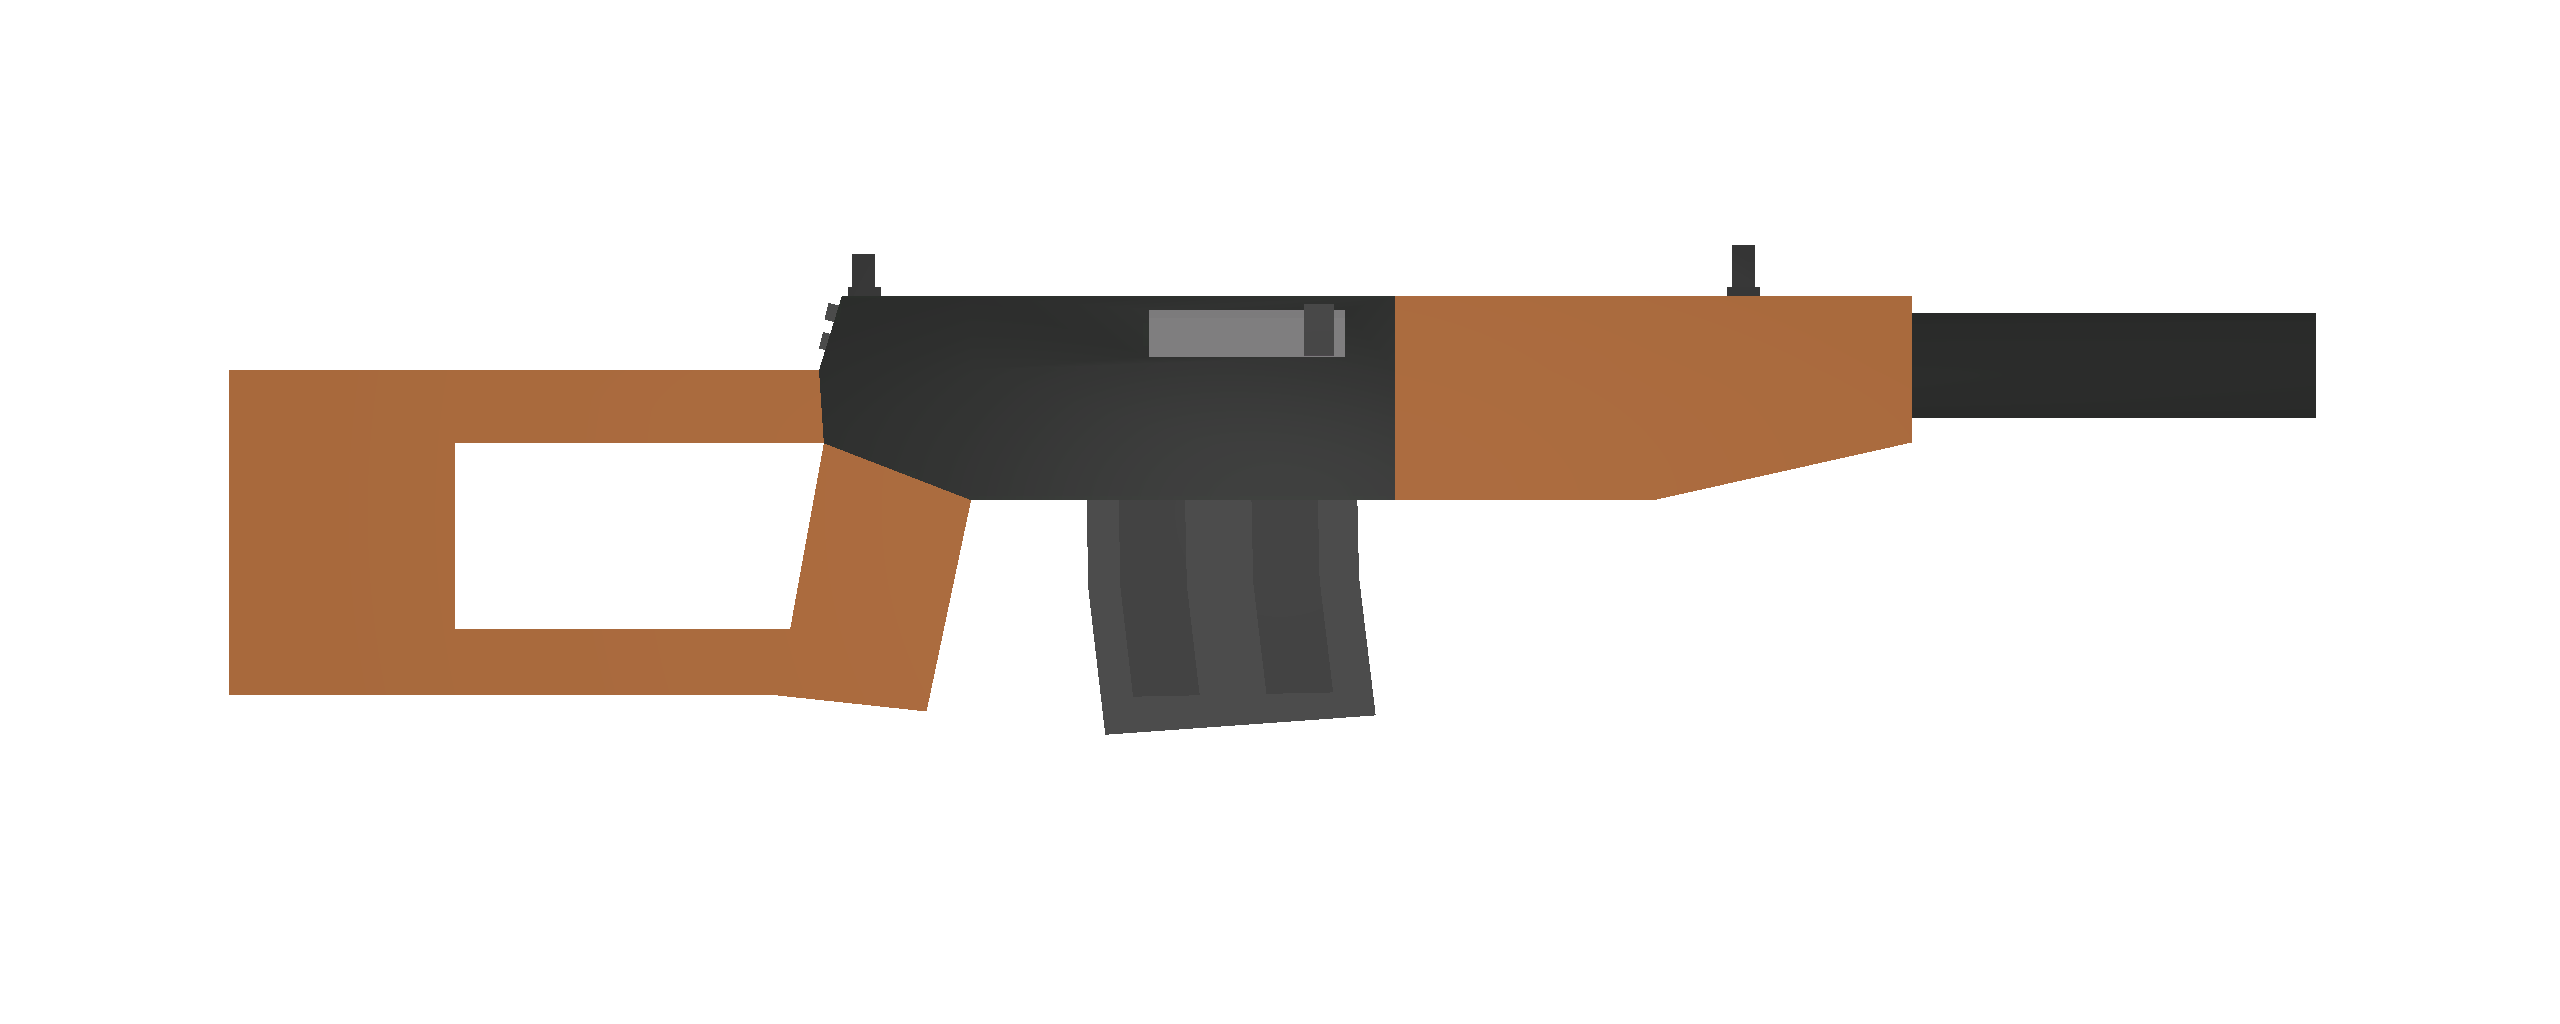 Picture of Unturned Item: Snayperskya